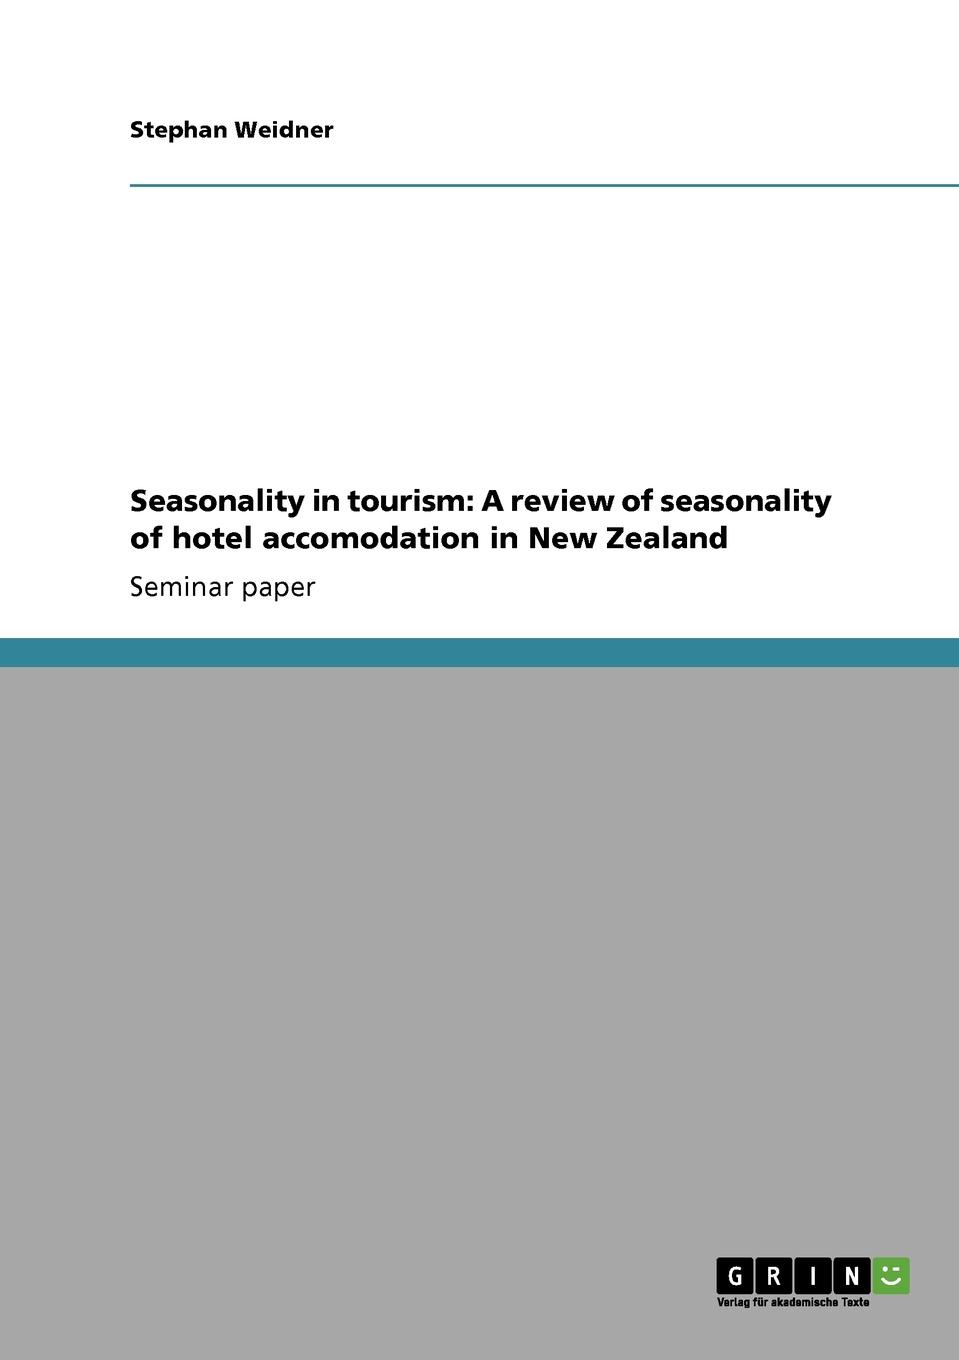 Stephan Weidner Seasonality in tourism. A review of seasonality of hotel accomodation in New Zealand